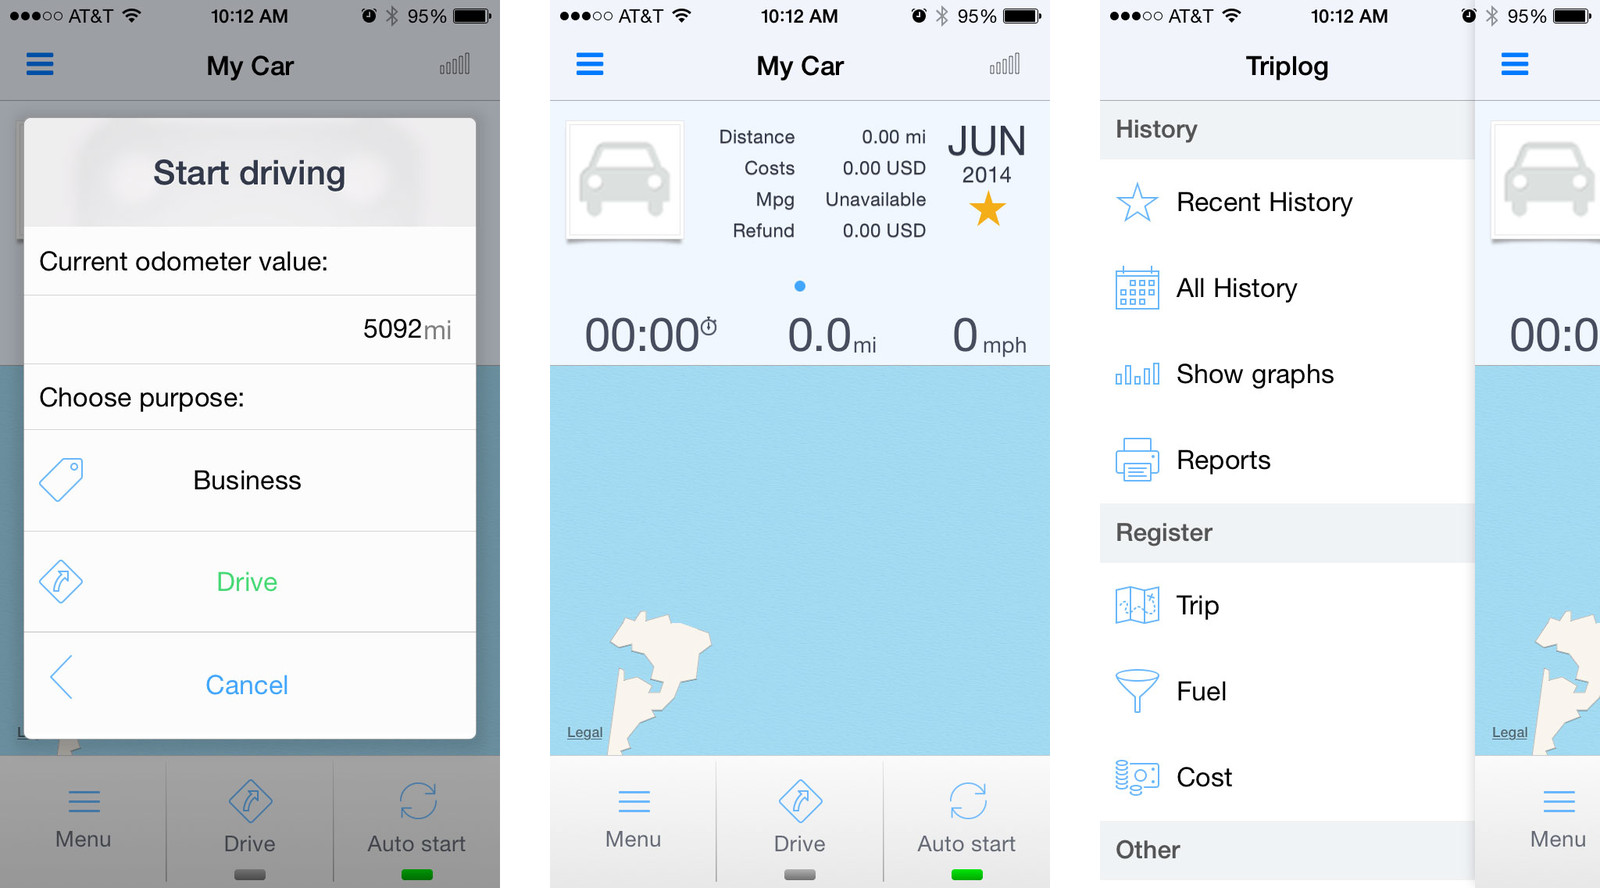 Best mileage tracking apps for iPhone: Triplog